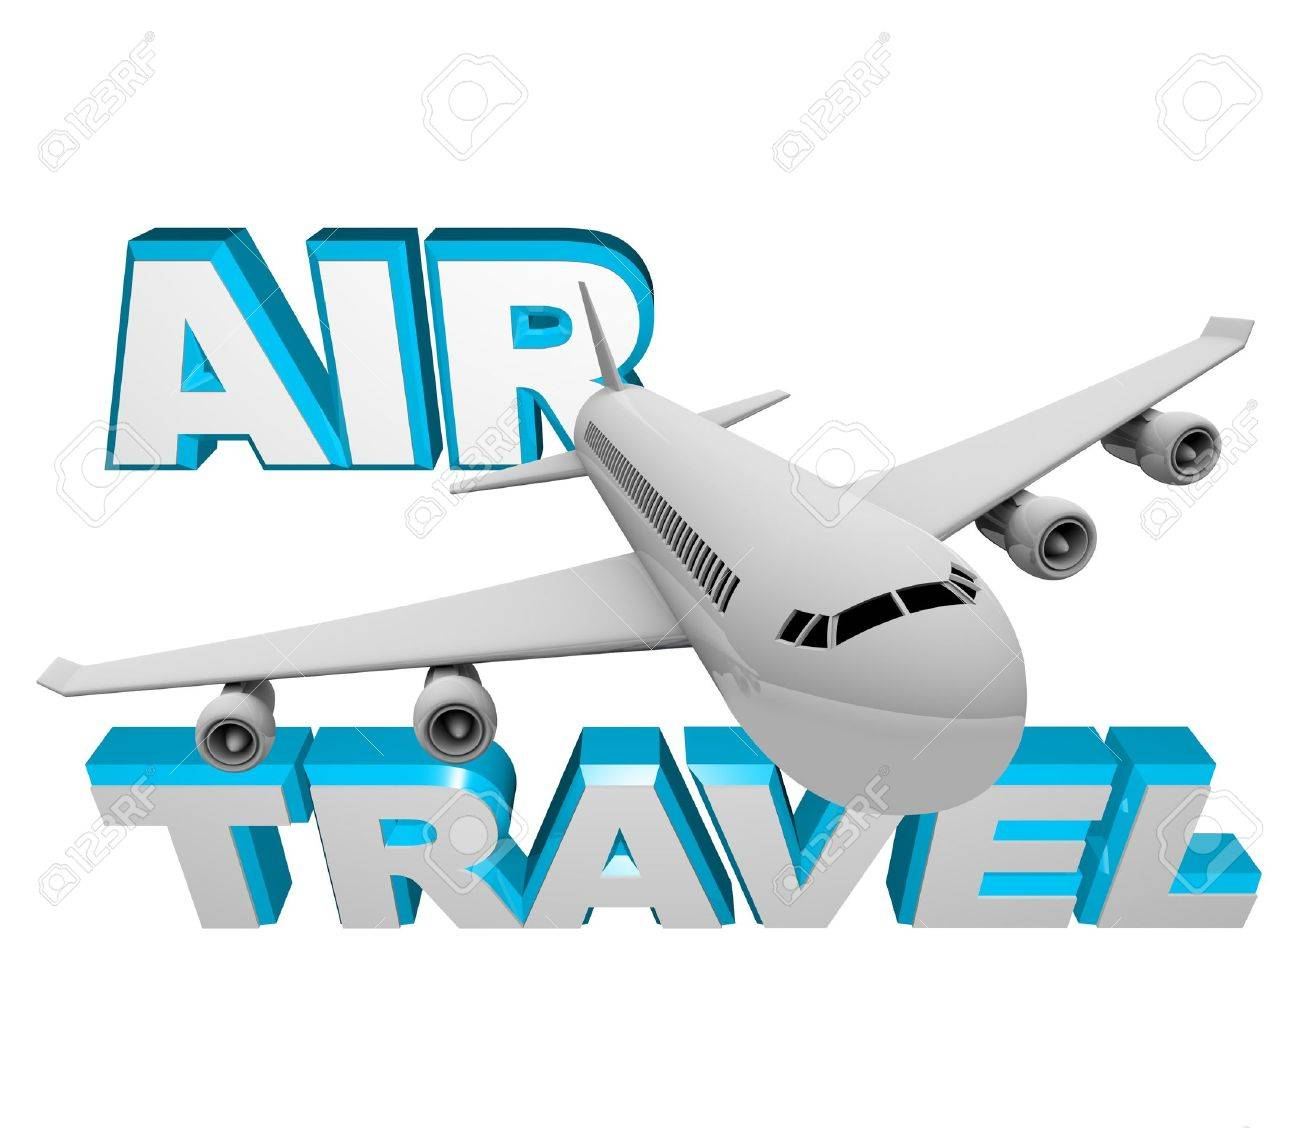 Book a flight for Air Travel, photo depicting an airplane jet soaring in front of words representing airline transportation for vacation or business getaway Stock Photo - 9596888